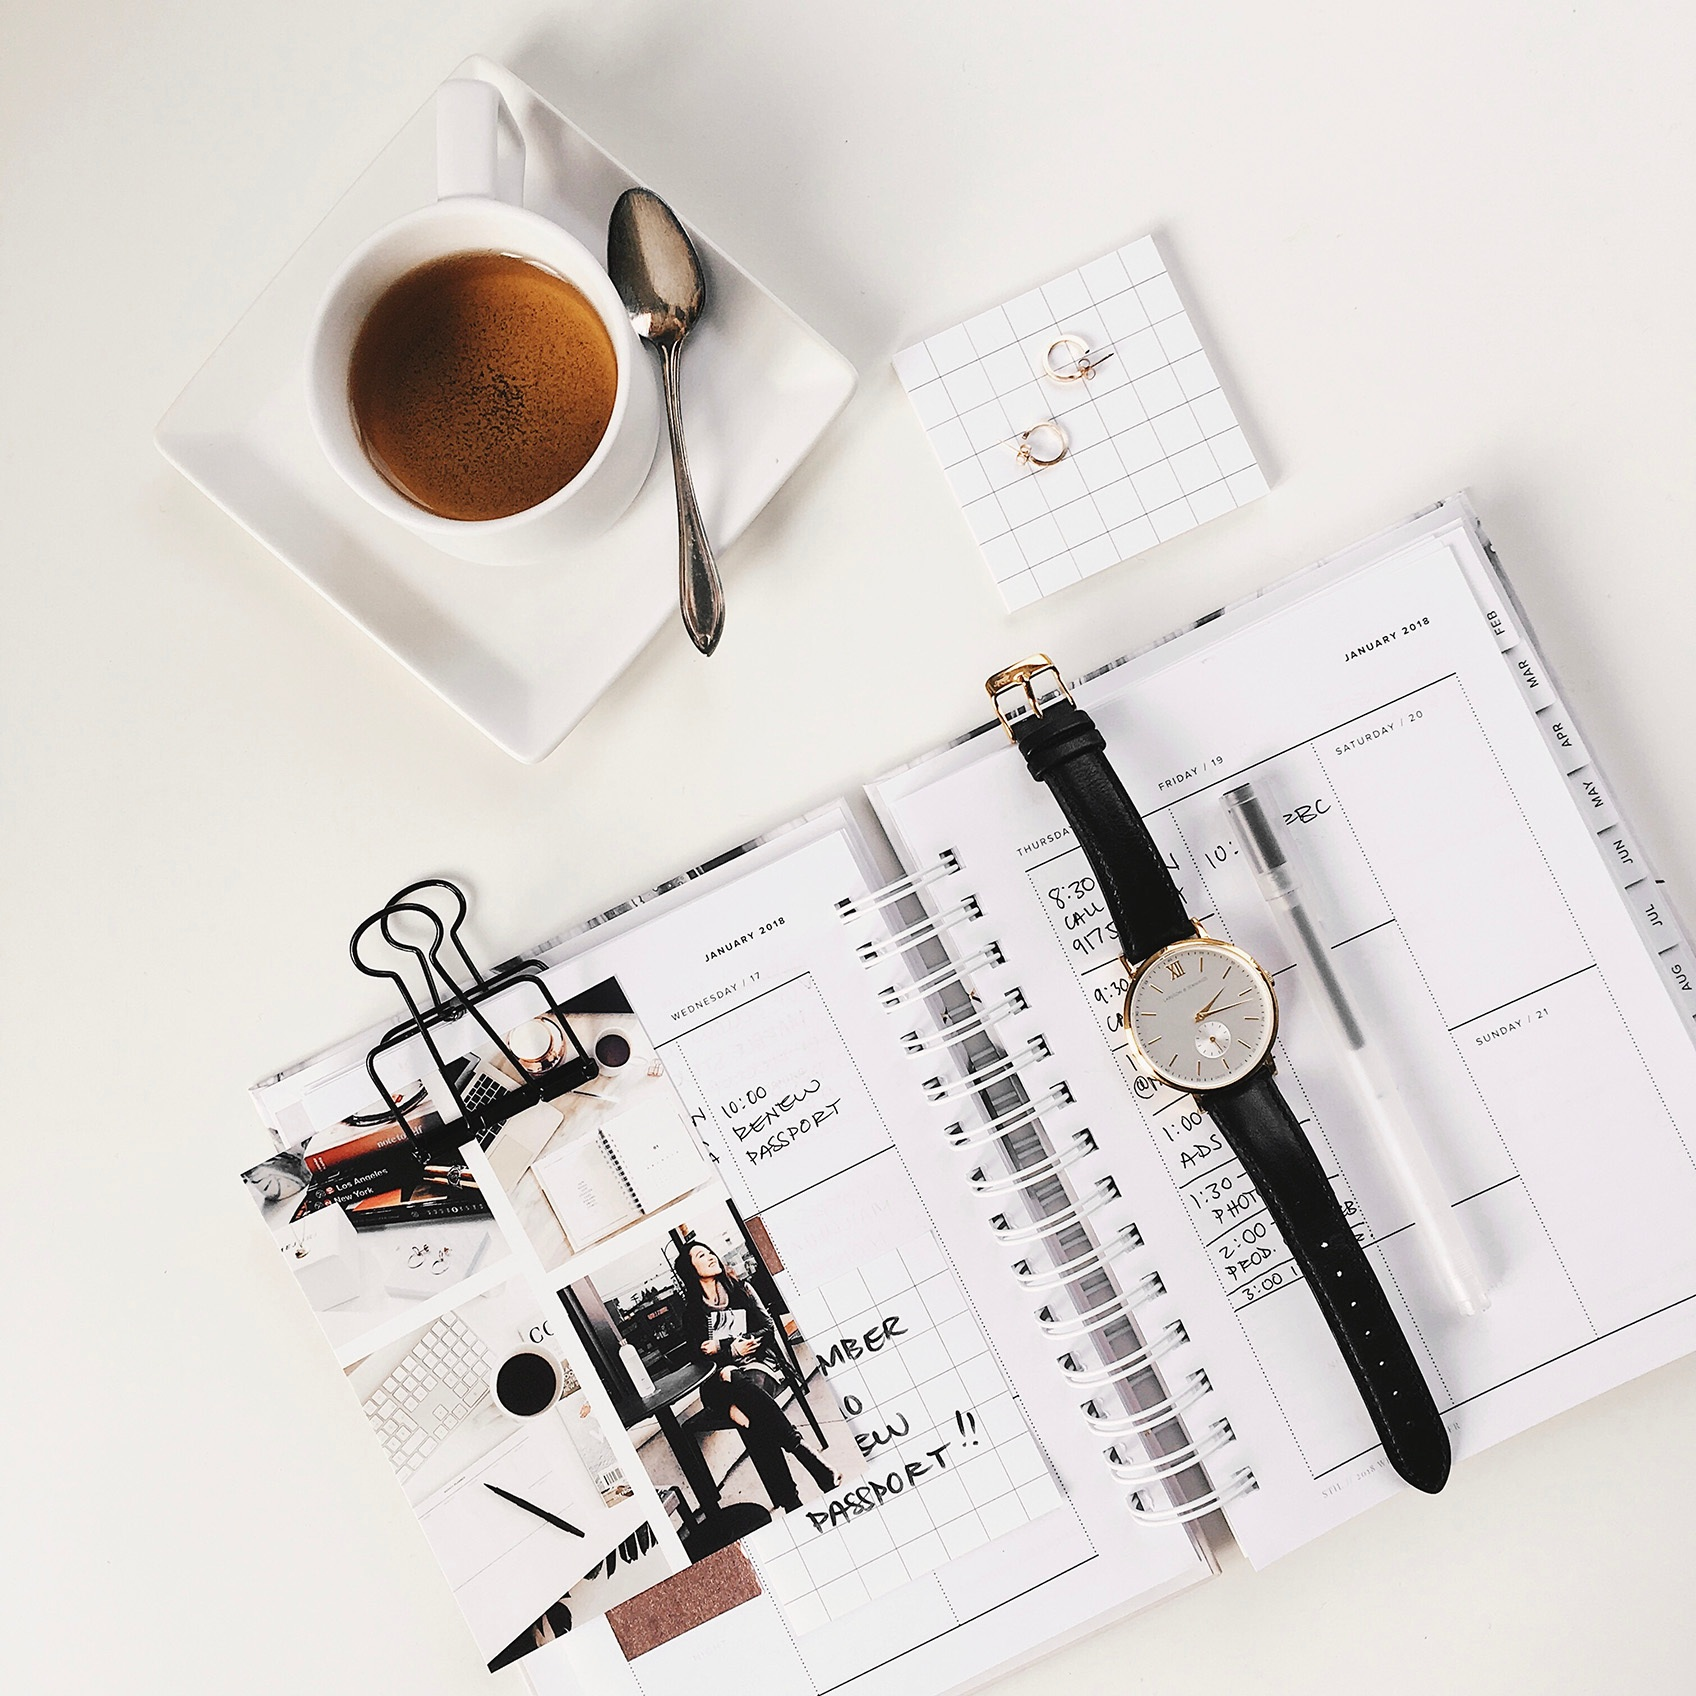 Life Organizing - Whether it's an overflowing inbox, a habit of over-scheduling, an all too familiar feeling of being rushed or coming up short, a deep desire to get something done yet it still lingers on the to-do list, we can help .